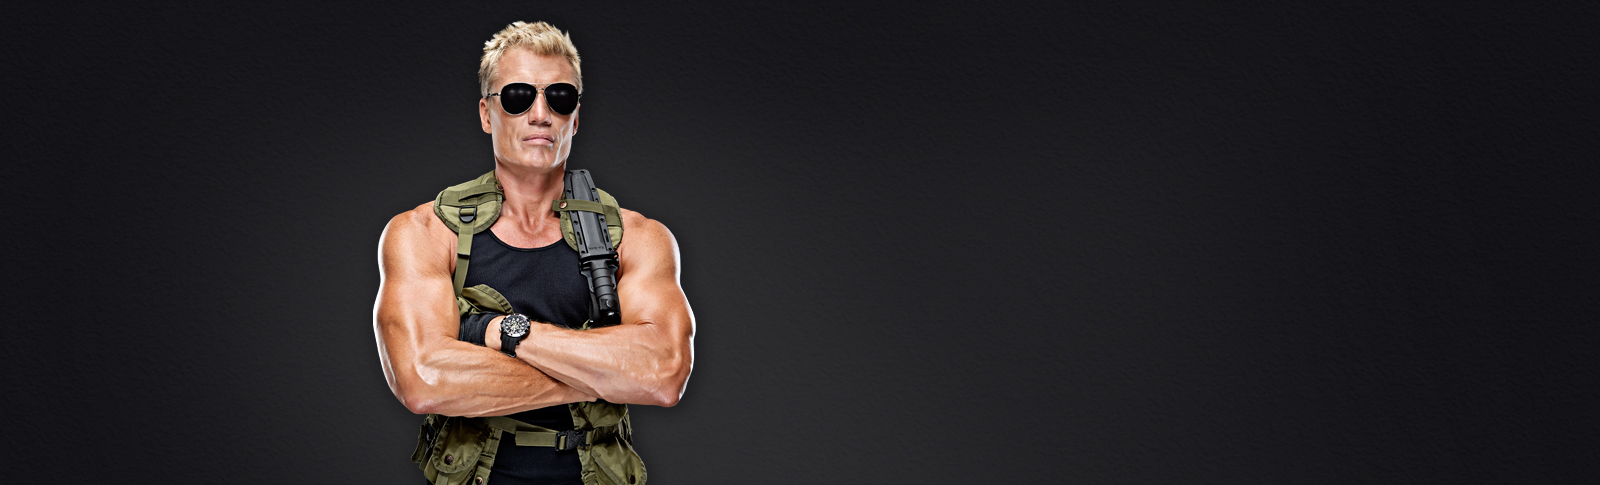 Win a Trip to be an Action Movie Star with Dolph Lundgren